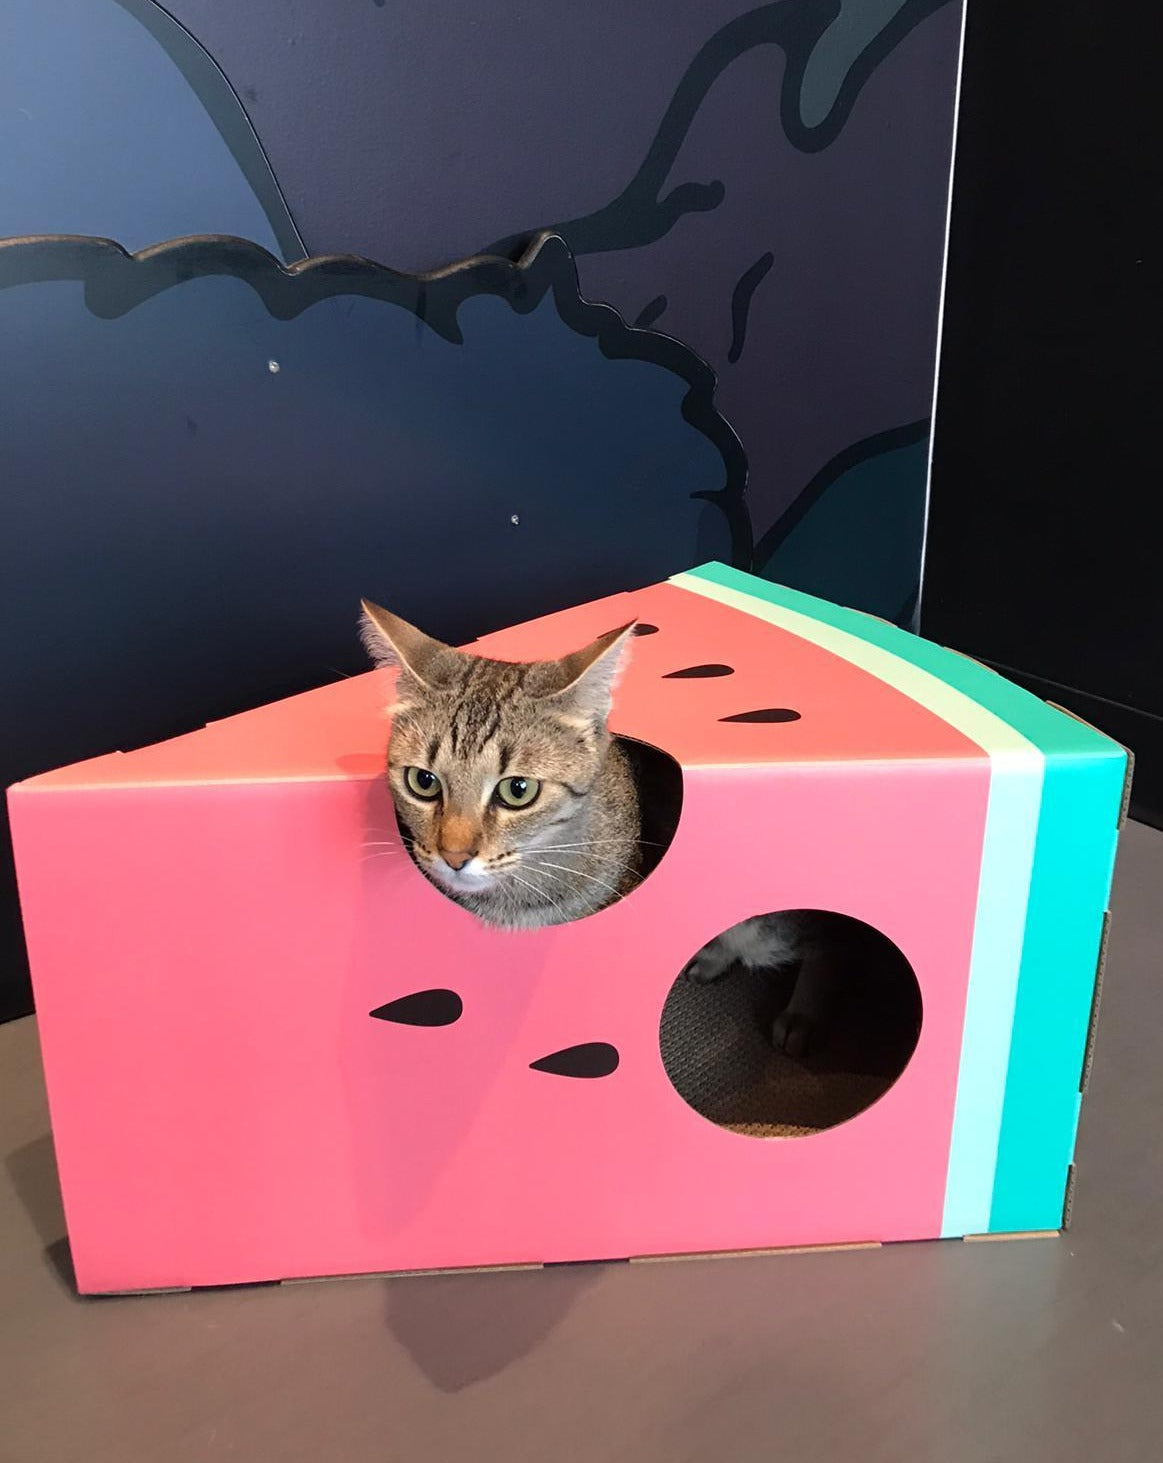 Vetreska Watermelon Cat Scratcher Box - Catoro Cat Cafe